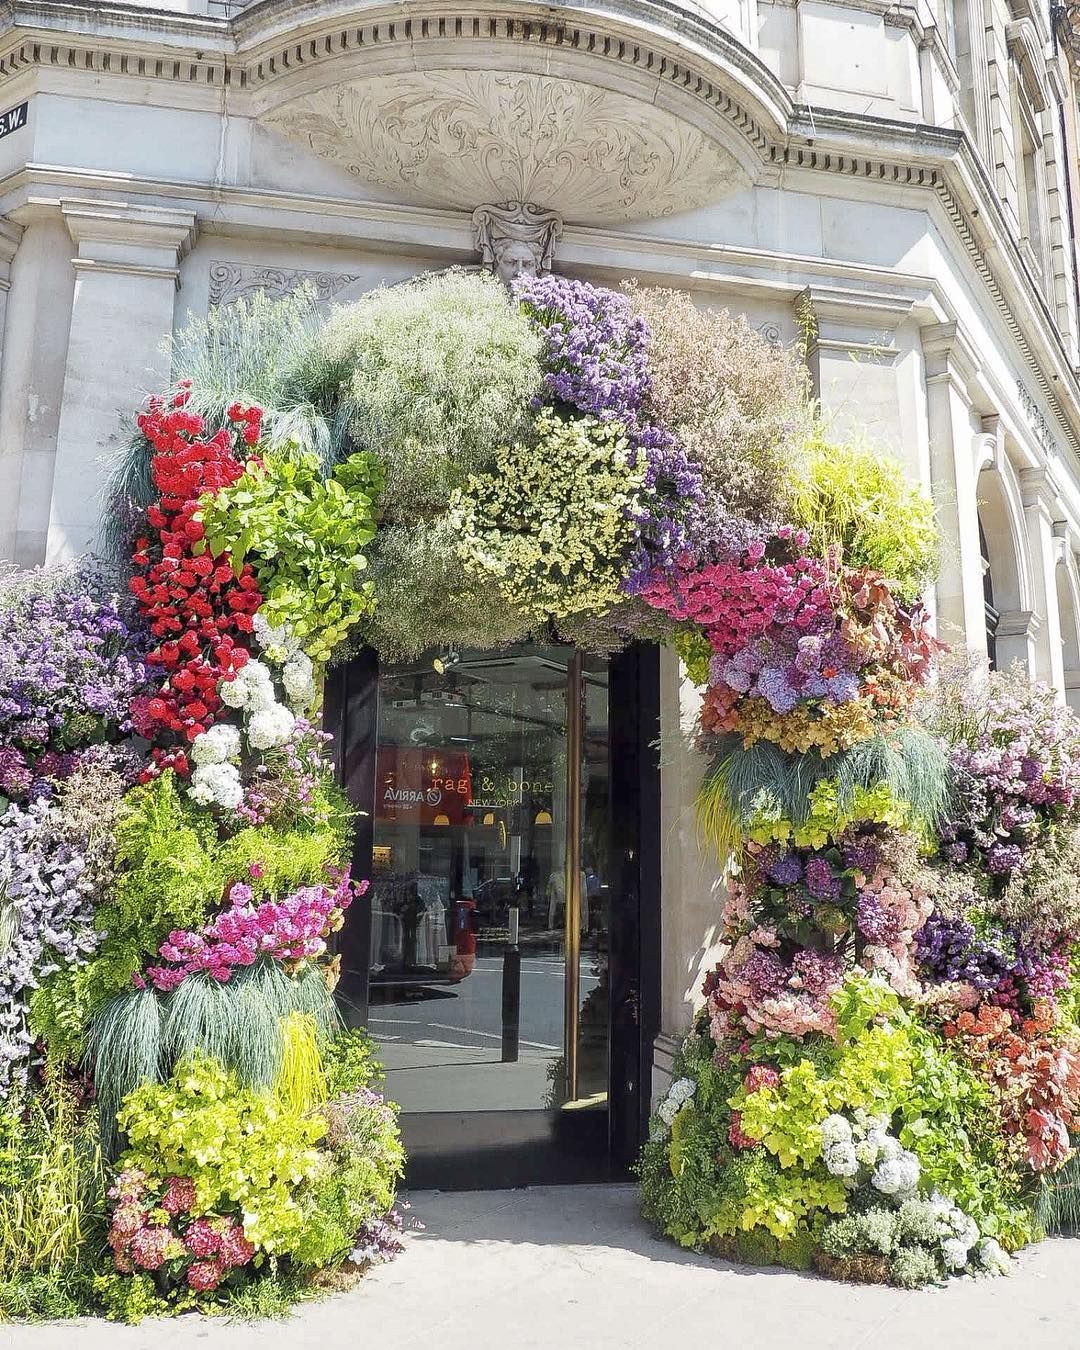 Citychic4ever On Instagram Another London Tip Belgravia In